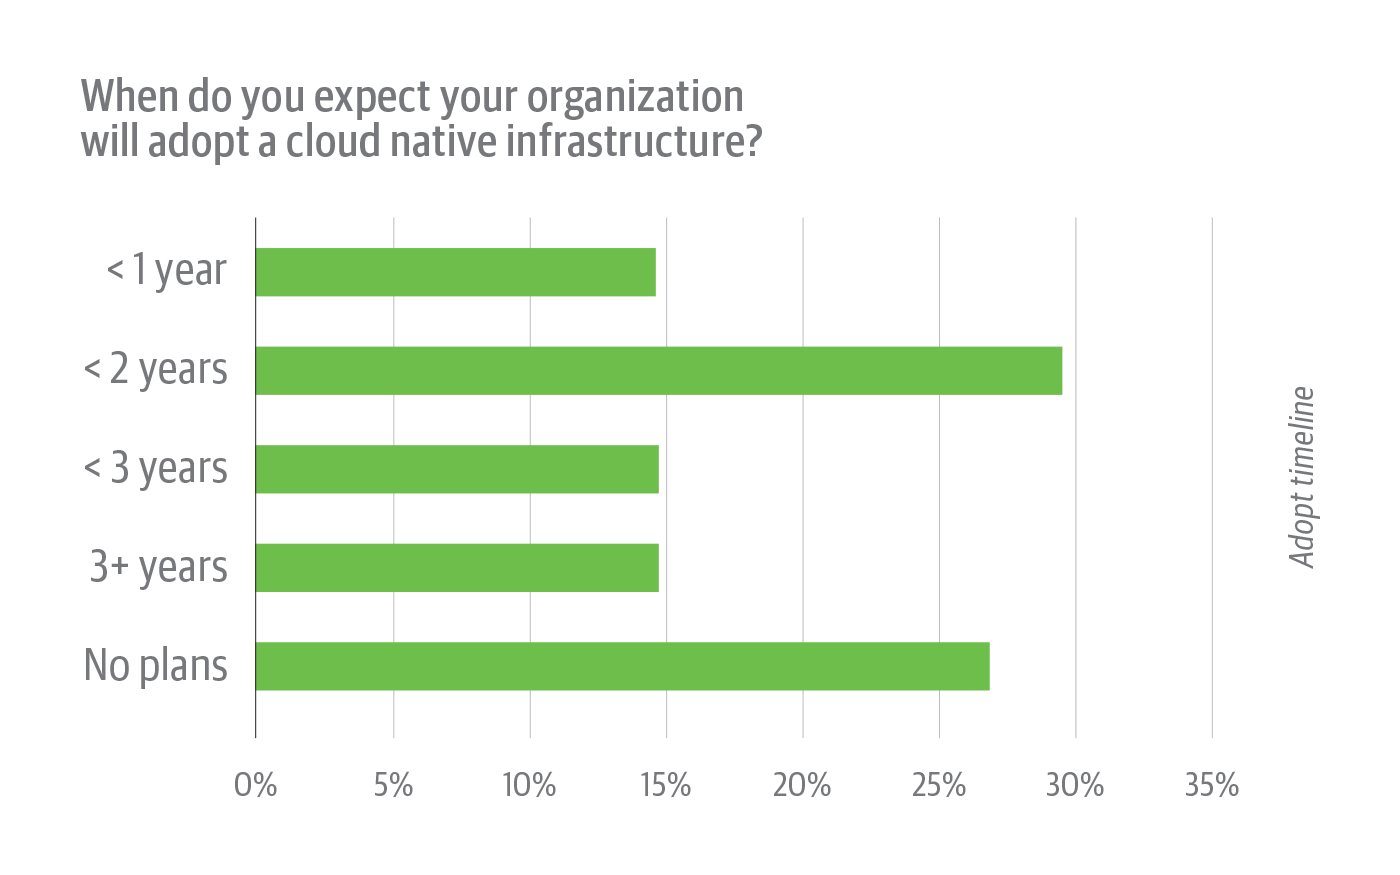 When survey respondents whose organizations have not adopted cloud native infrastructure expect to implement cloud native.